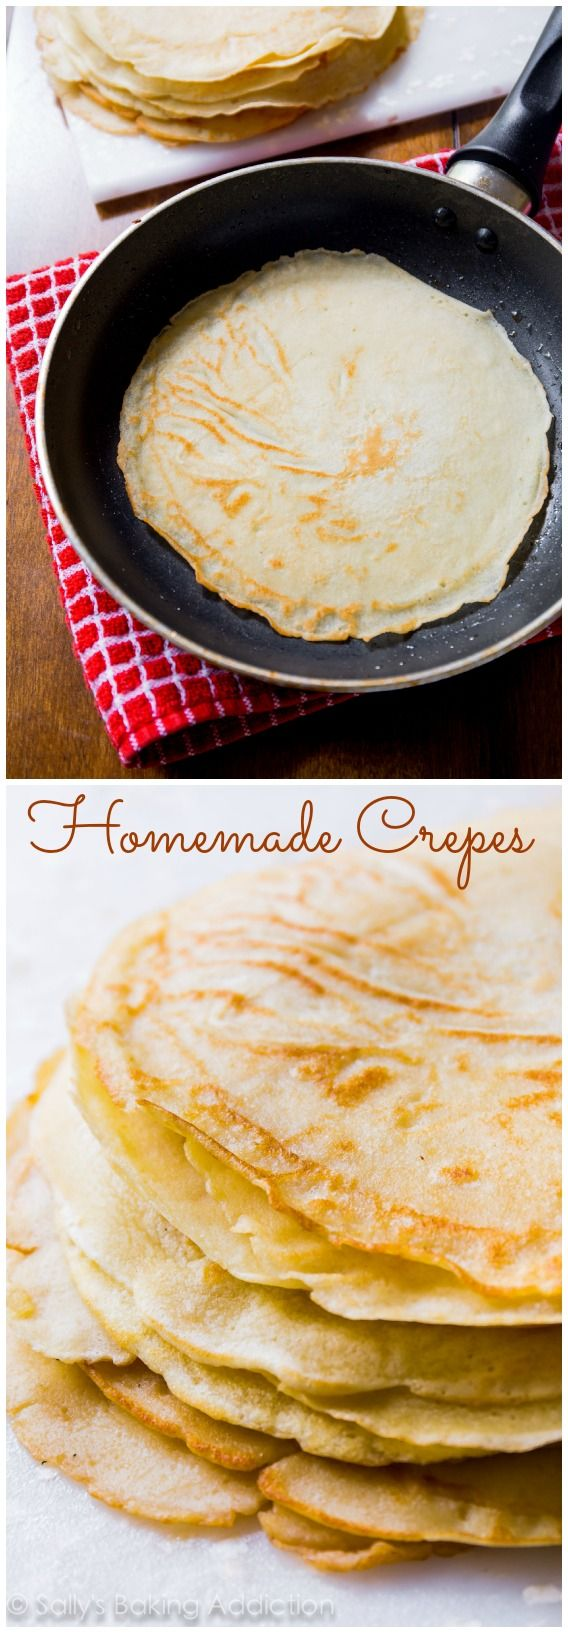 How to make (easy, delicious, out-of-this-world) Homemade Crepes. Recipe at sallysbakingaddiction.com